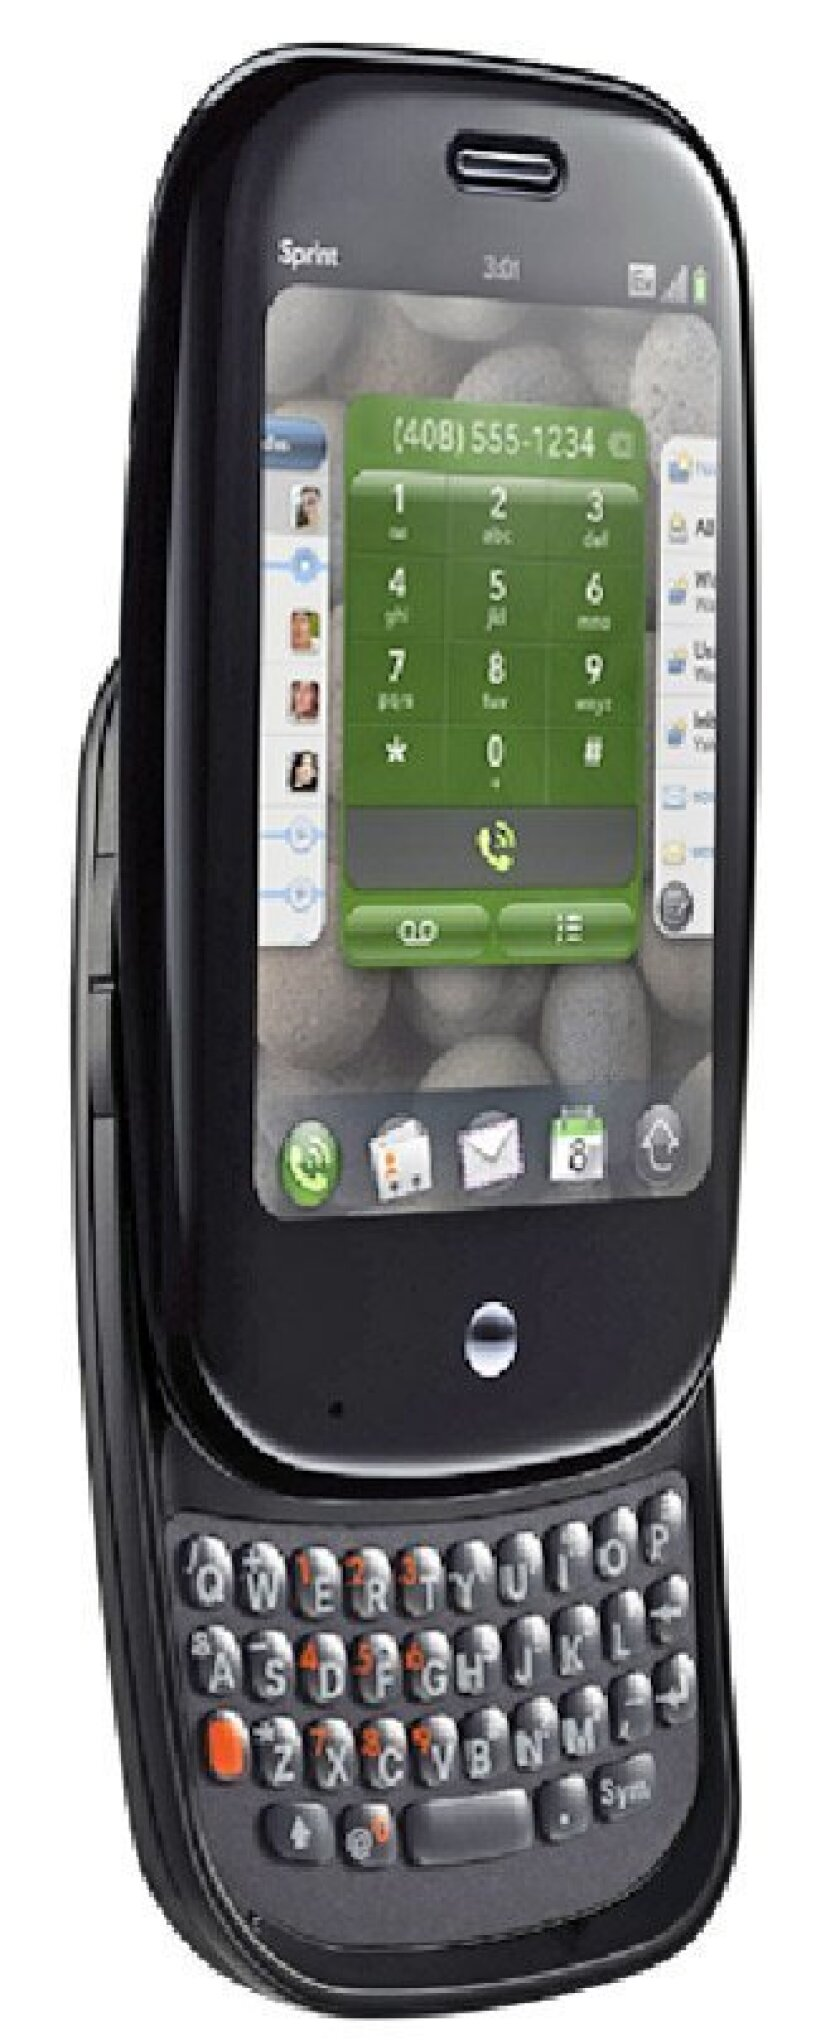 The Pre smart phone from Palm. (New York Times)